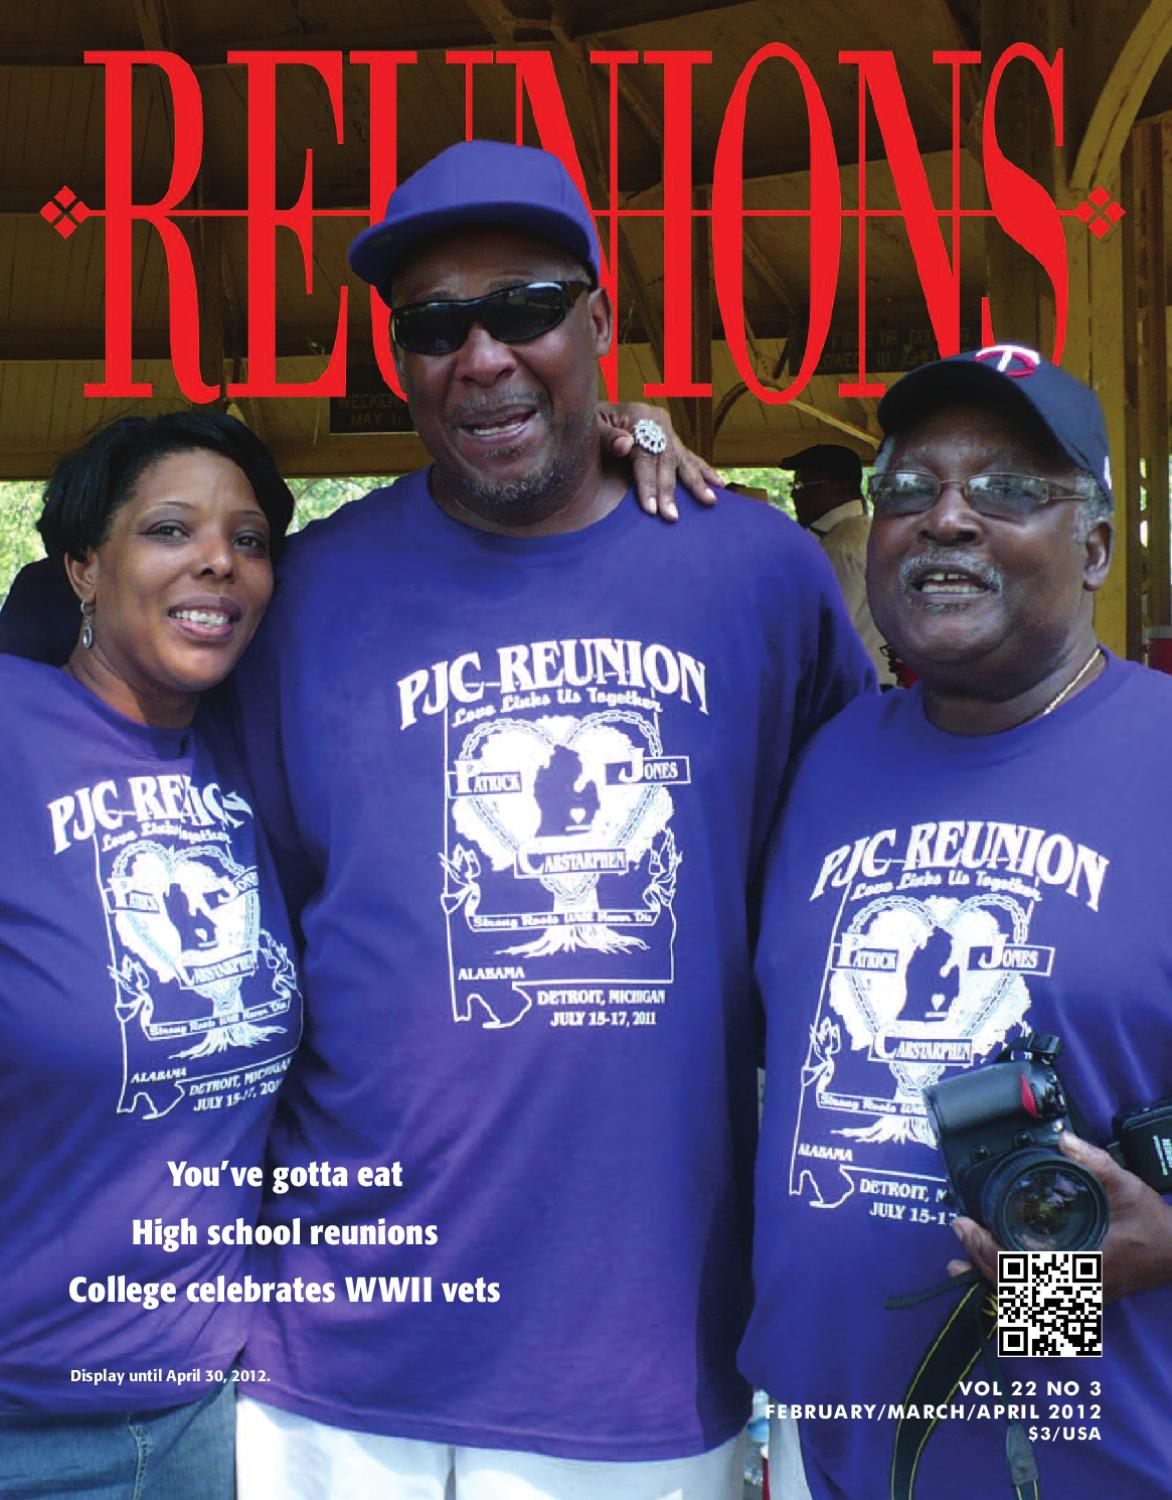 Reunions Magazine Volume 22, Number 3  February/March/April